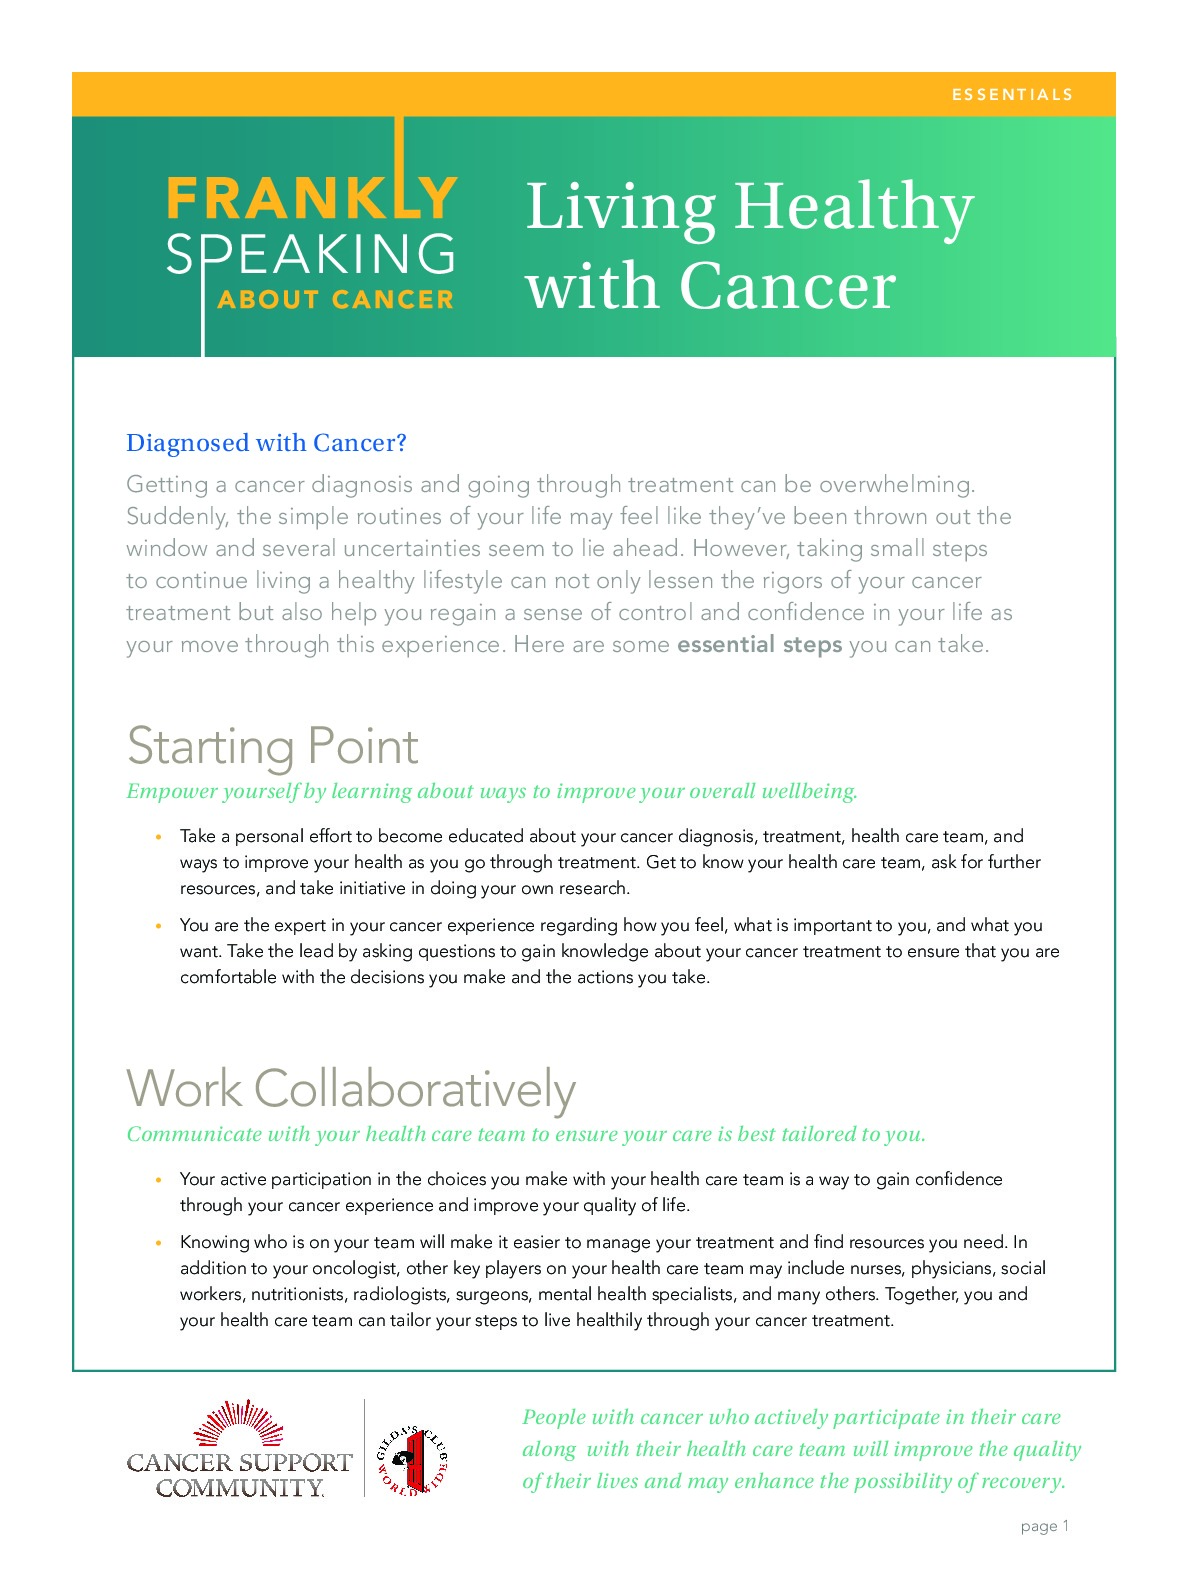 Frankly Speaking About Cancer: Living Healthy with Cancer